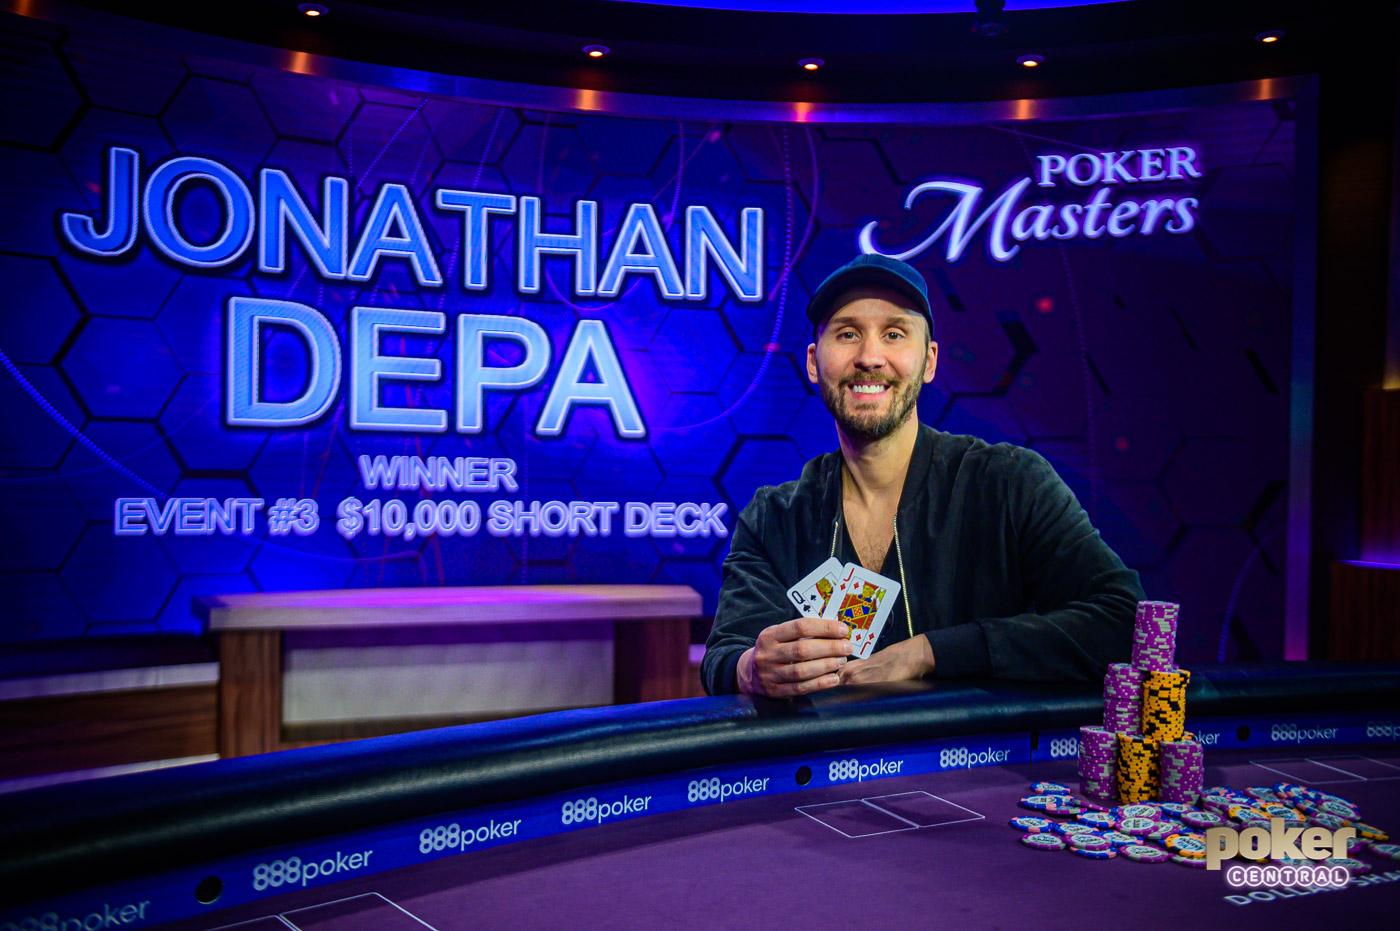 Jonathan Depa Wins Event #3 of the 2019 Poker Masters.